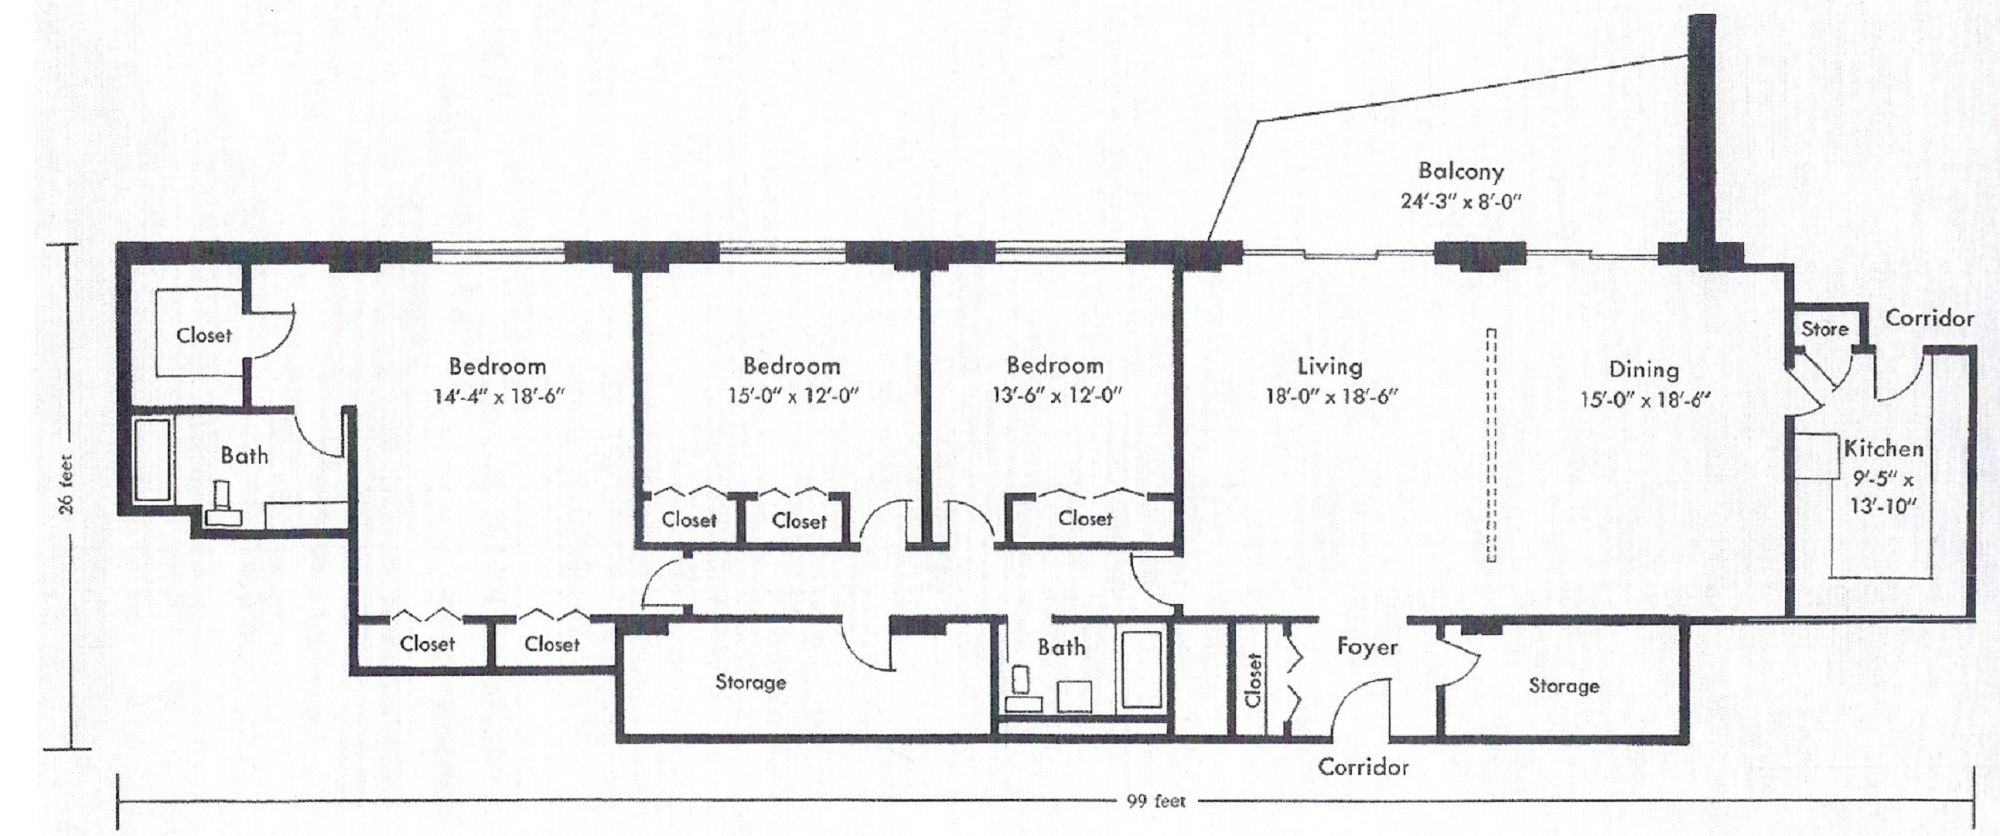 3 Bedroom East Floor Plan